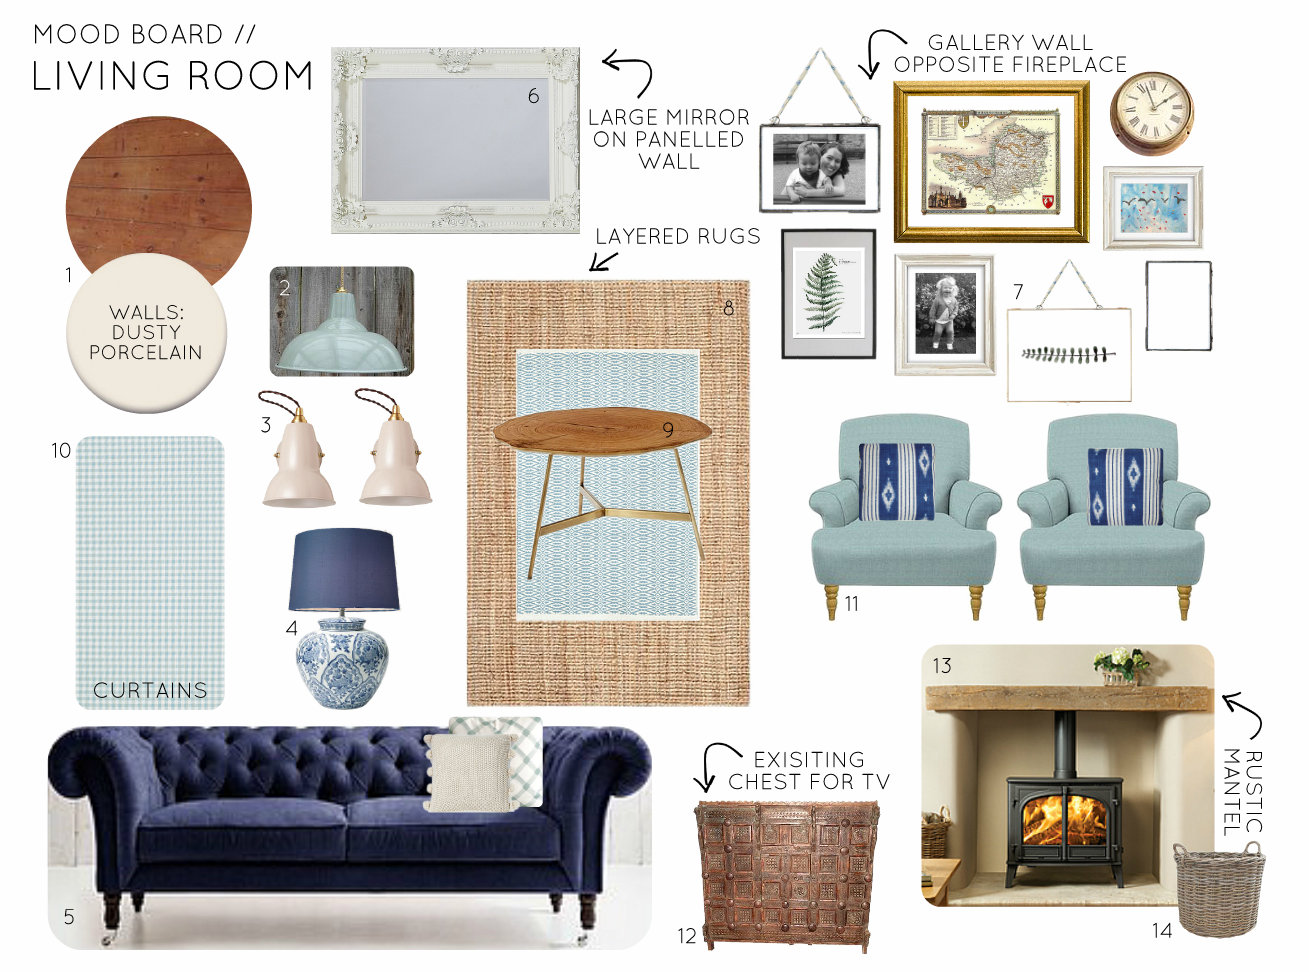 Mood Board: Traditional English Cottage Living Room